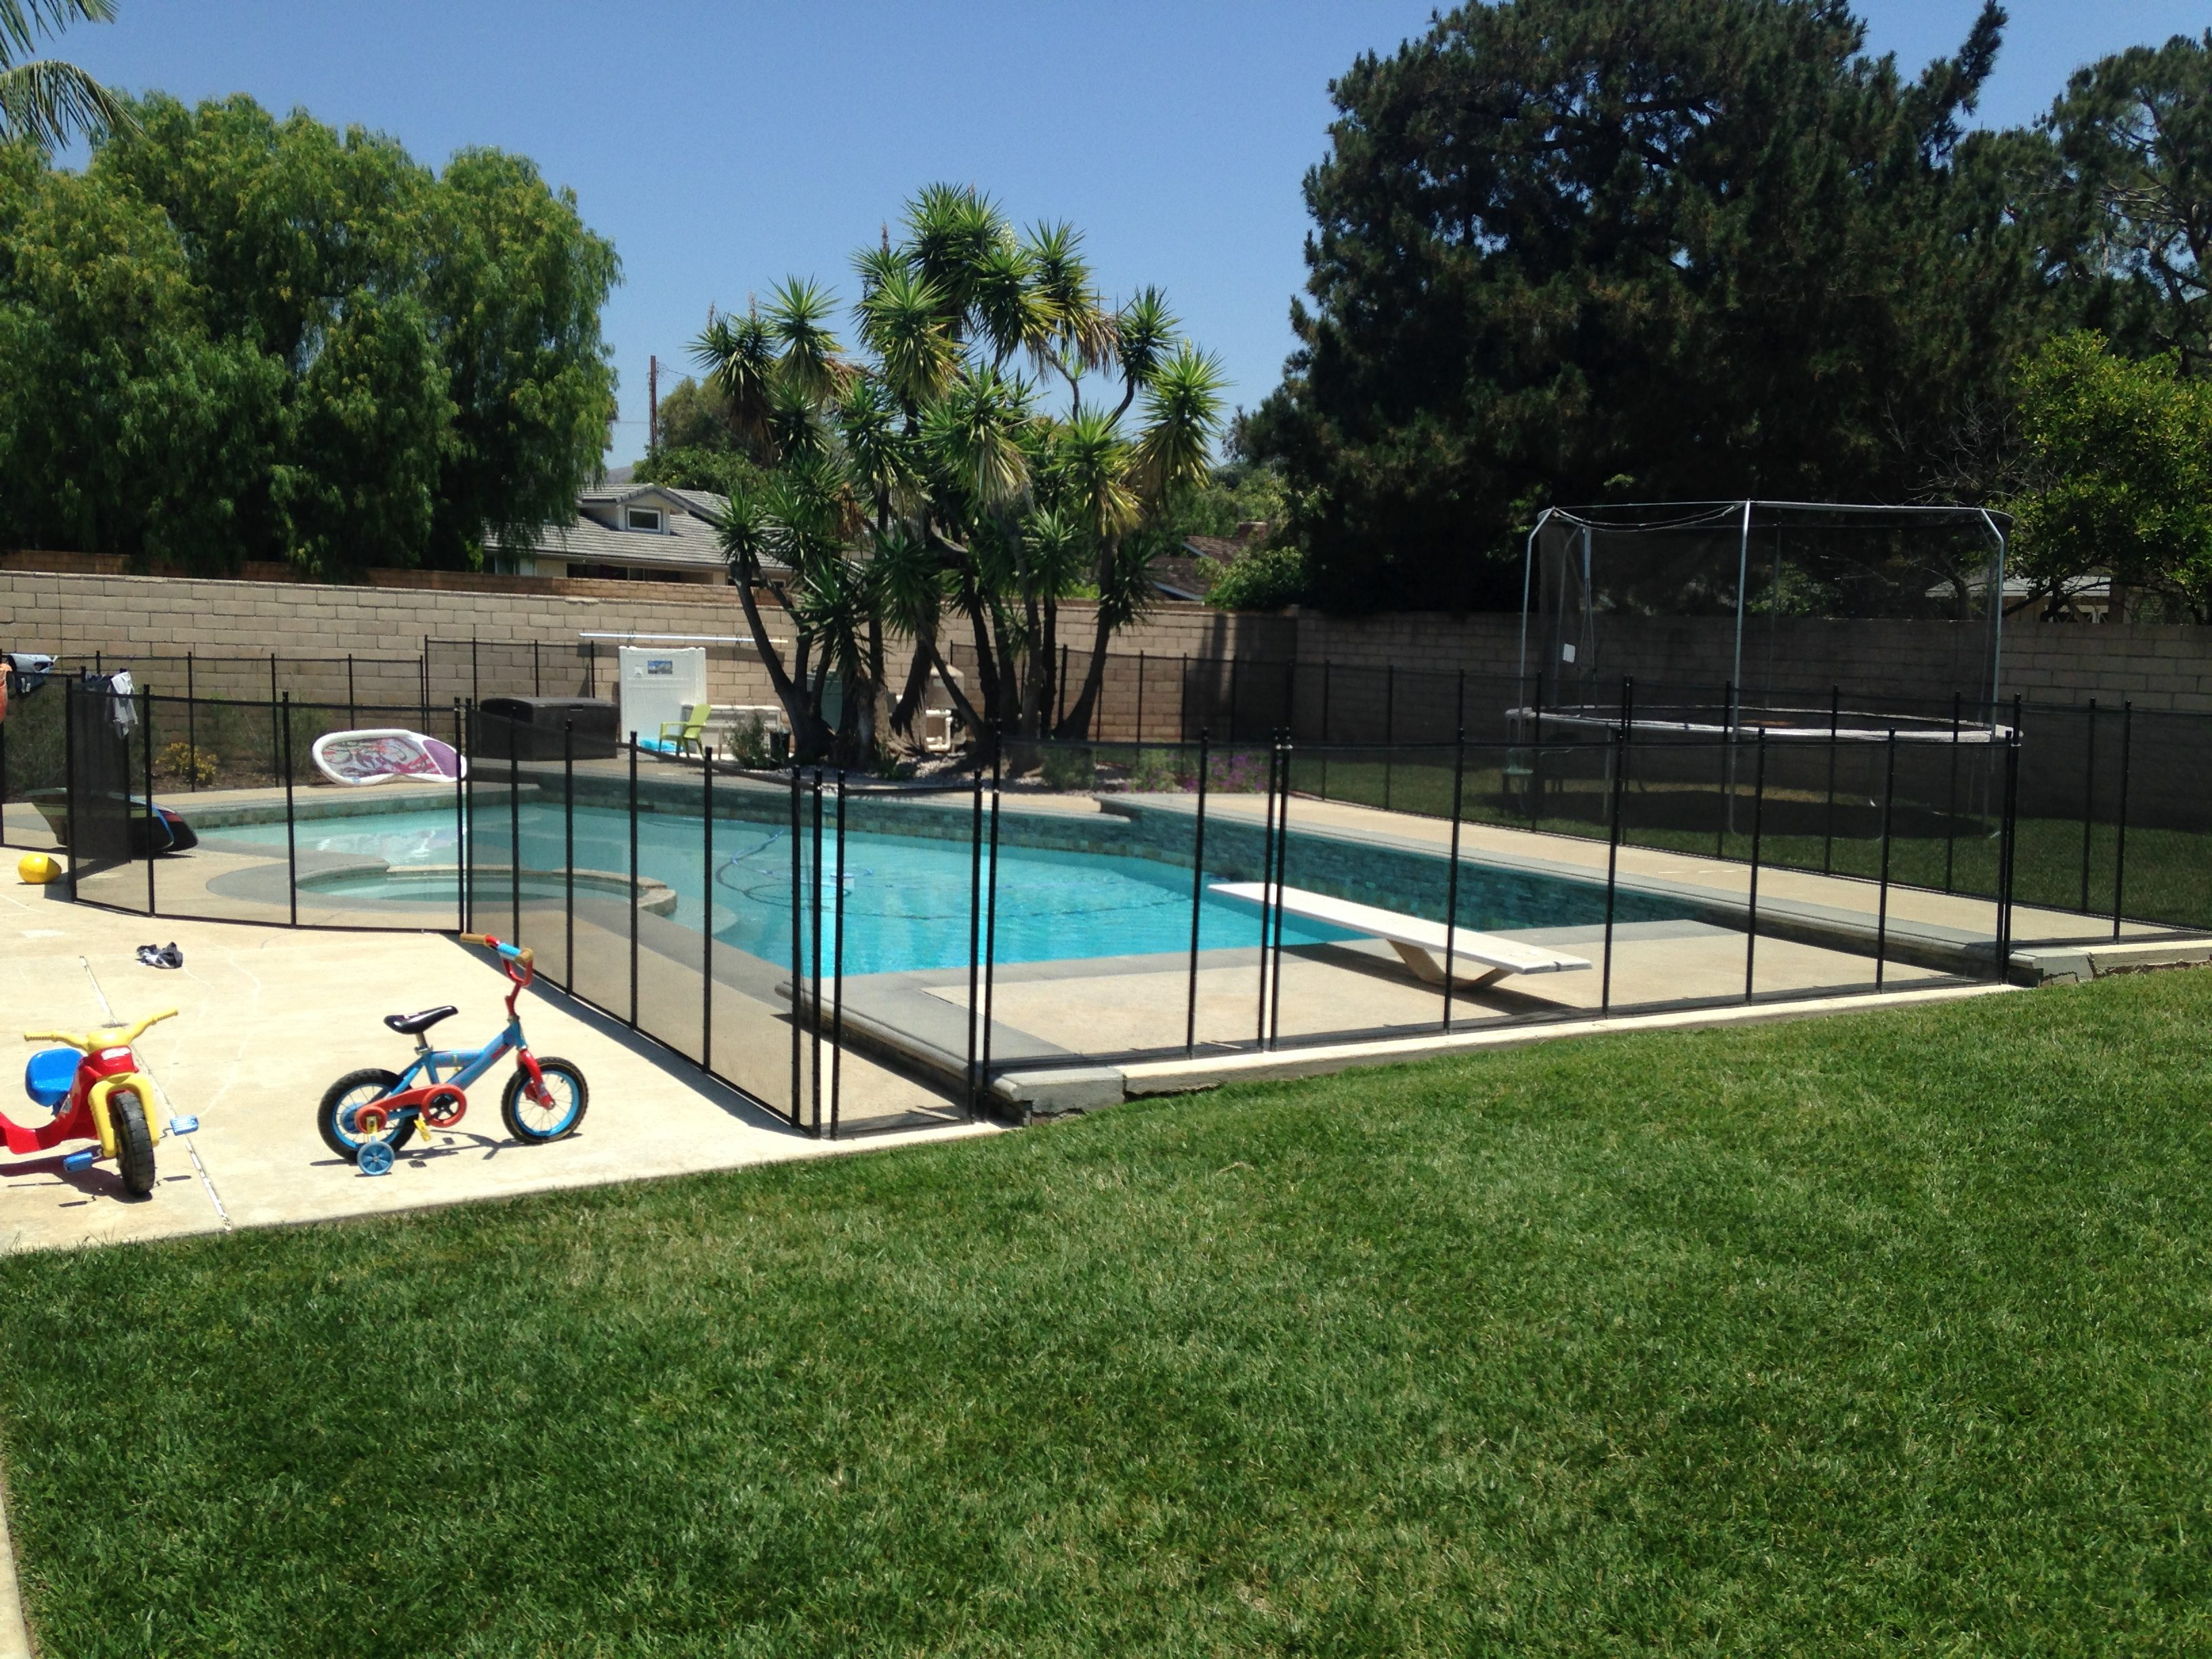 Pool Safety For Children In Orange County Orange County Pool Guardorange County Pool Guard